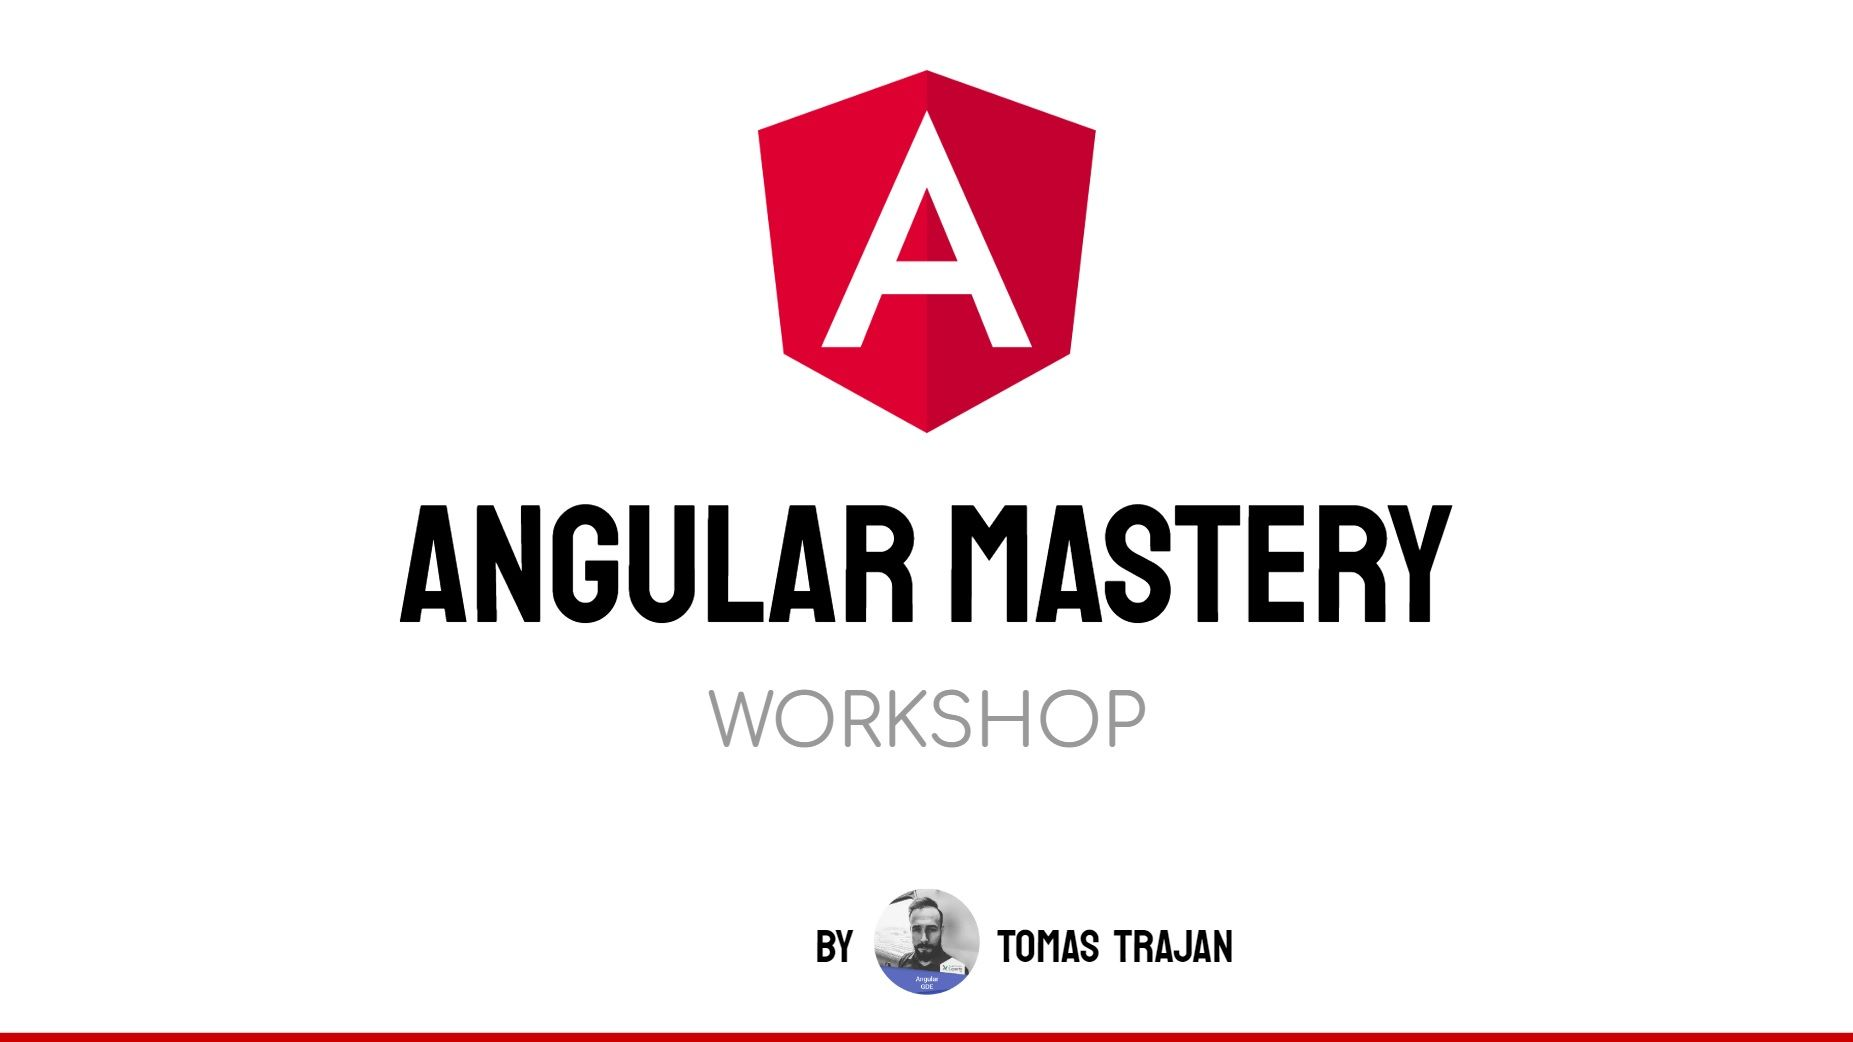 Angular Mastery Workshop